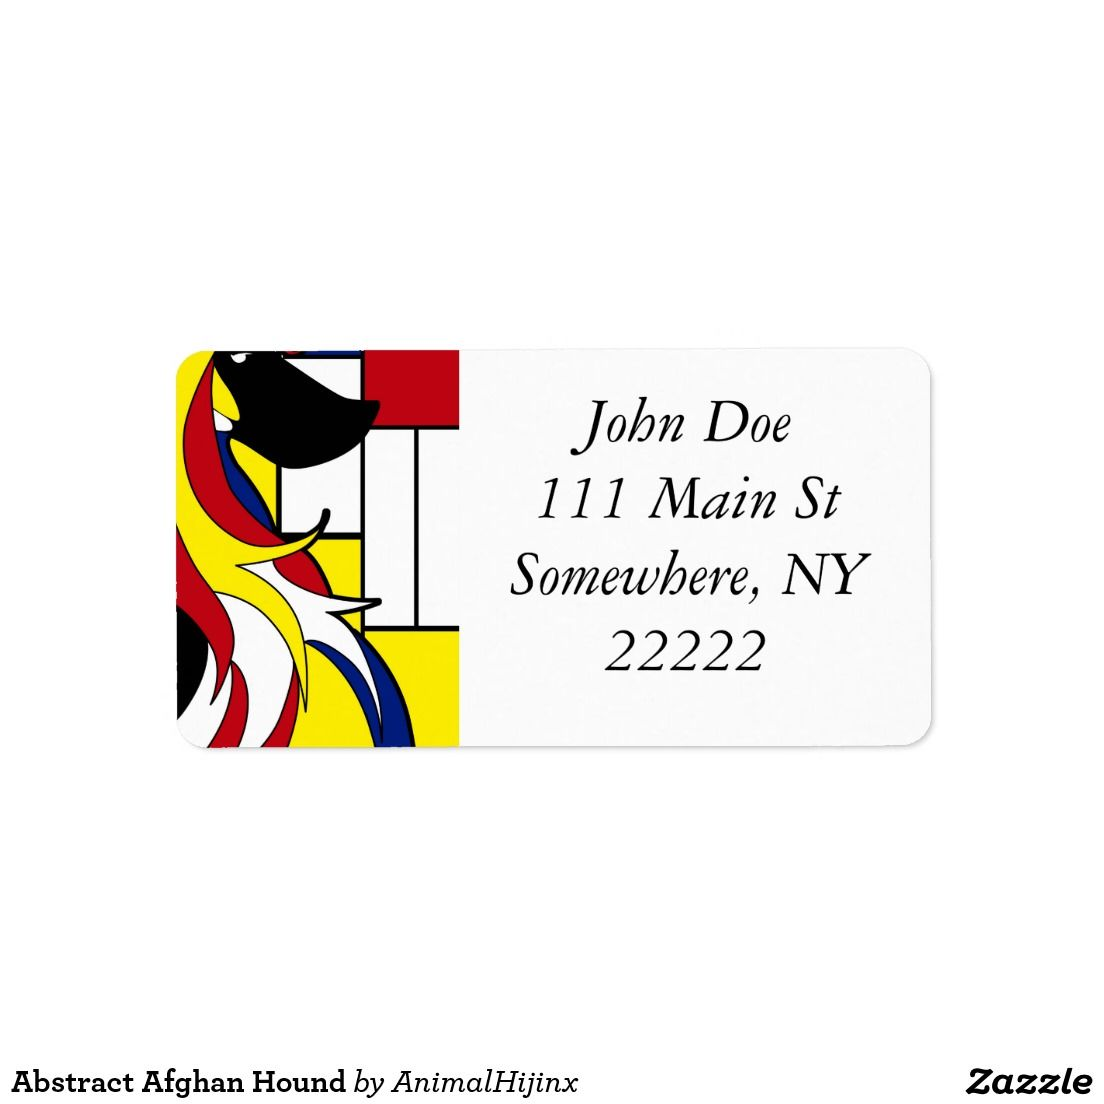 Abstract Afghan Hound Address Labels